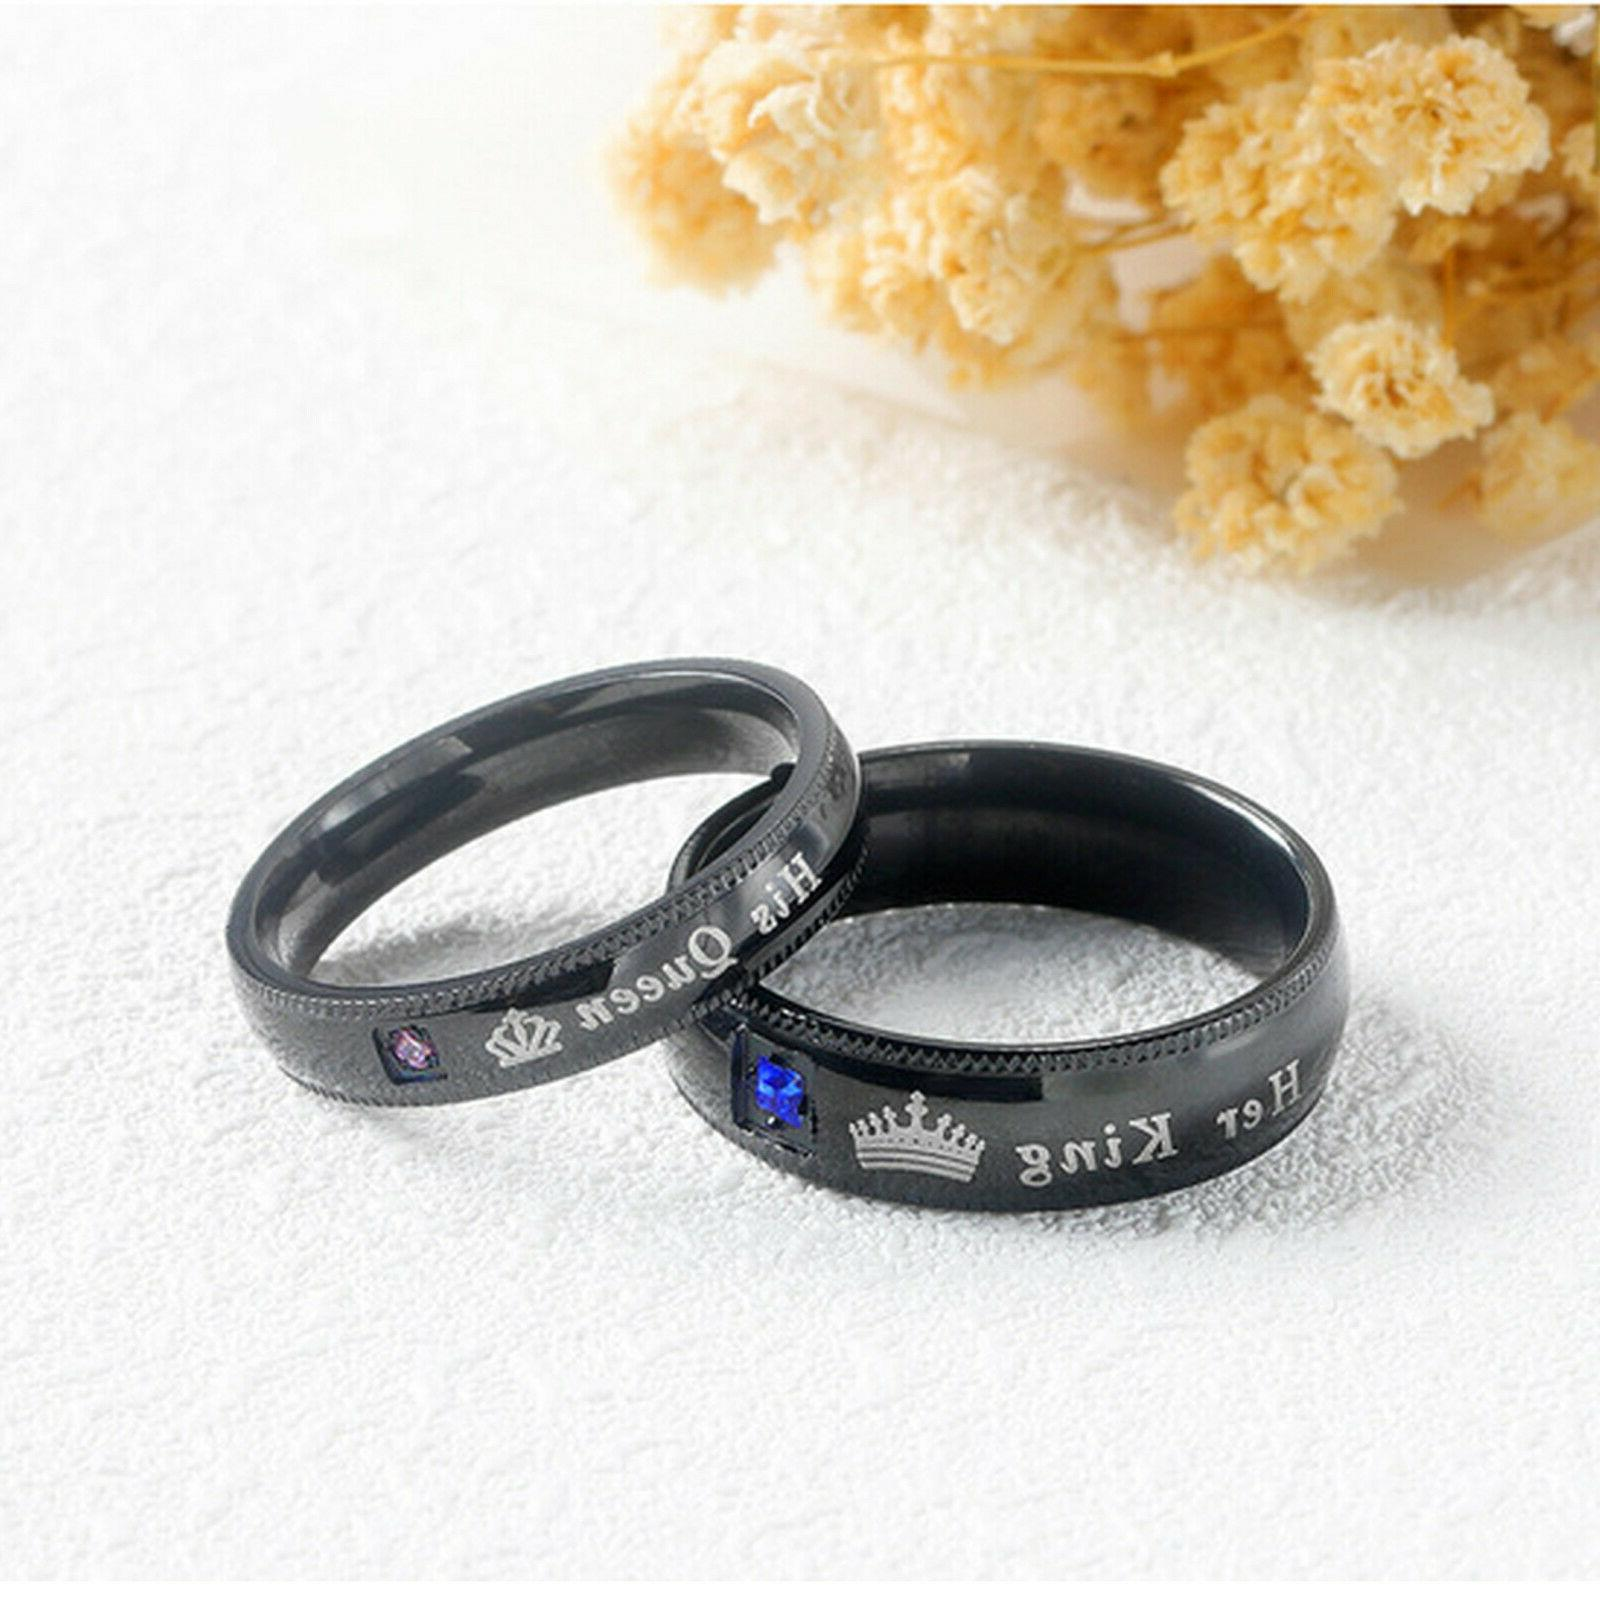 His King Couple's Matching Ring Band